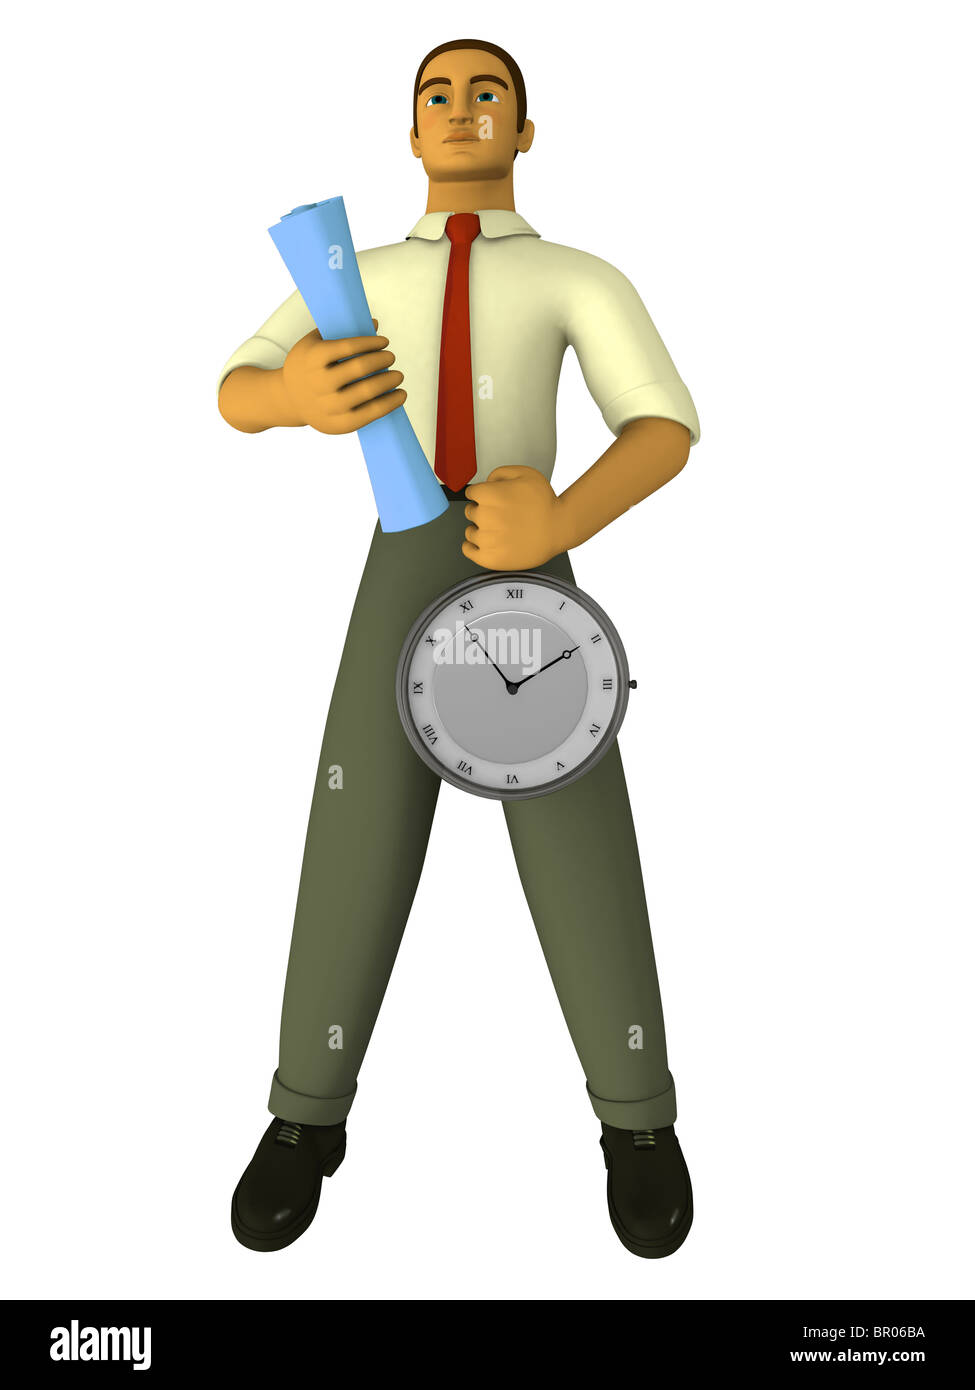 A businessman holding a stop watch and blueprints drawn in a 3Dstyle - Stock Image